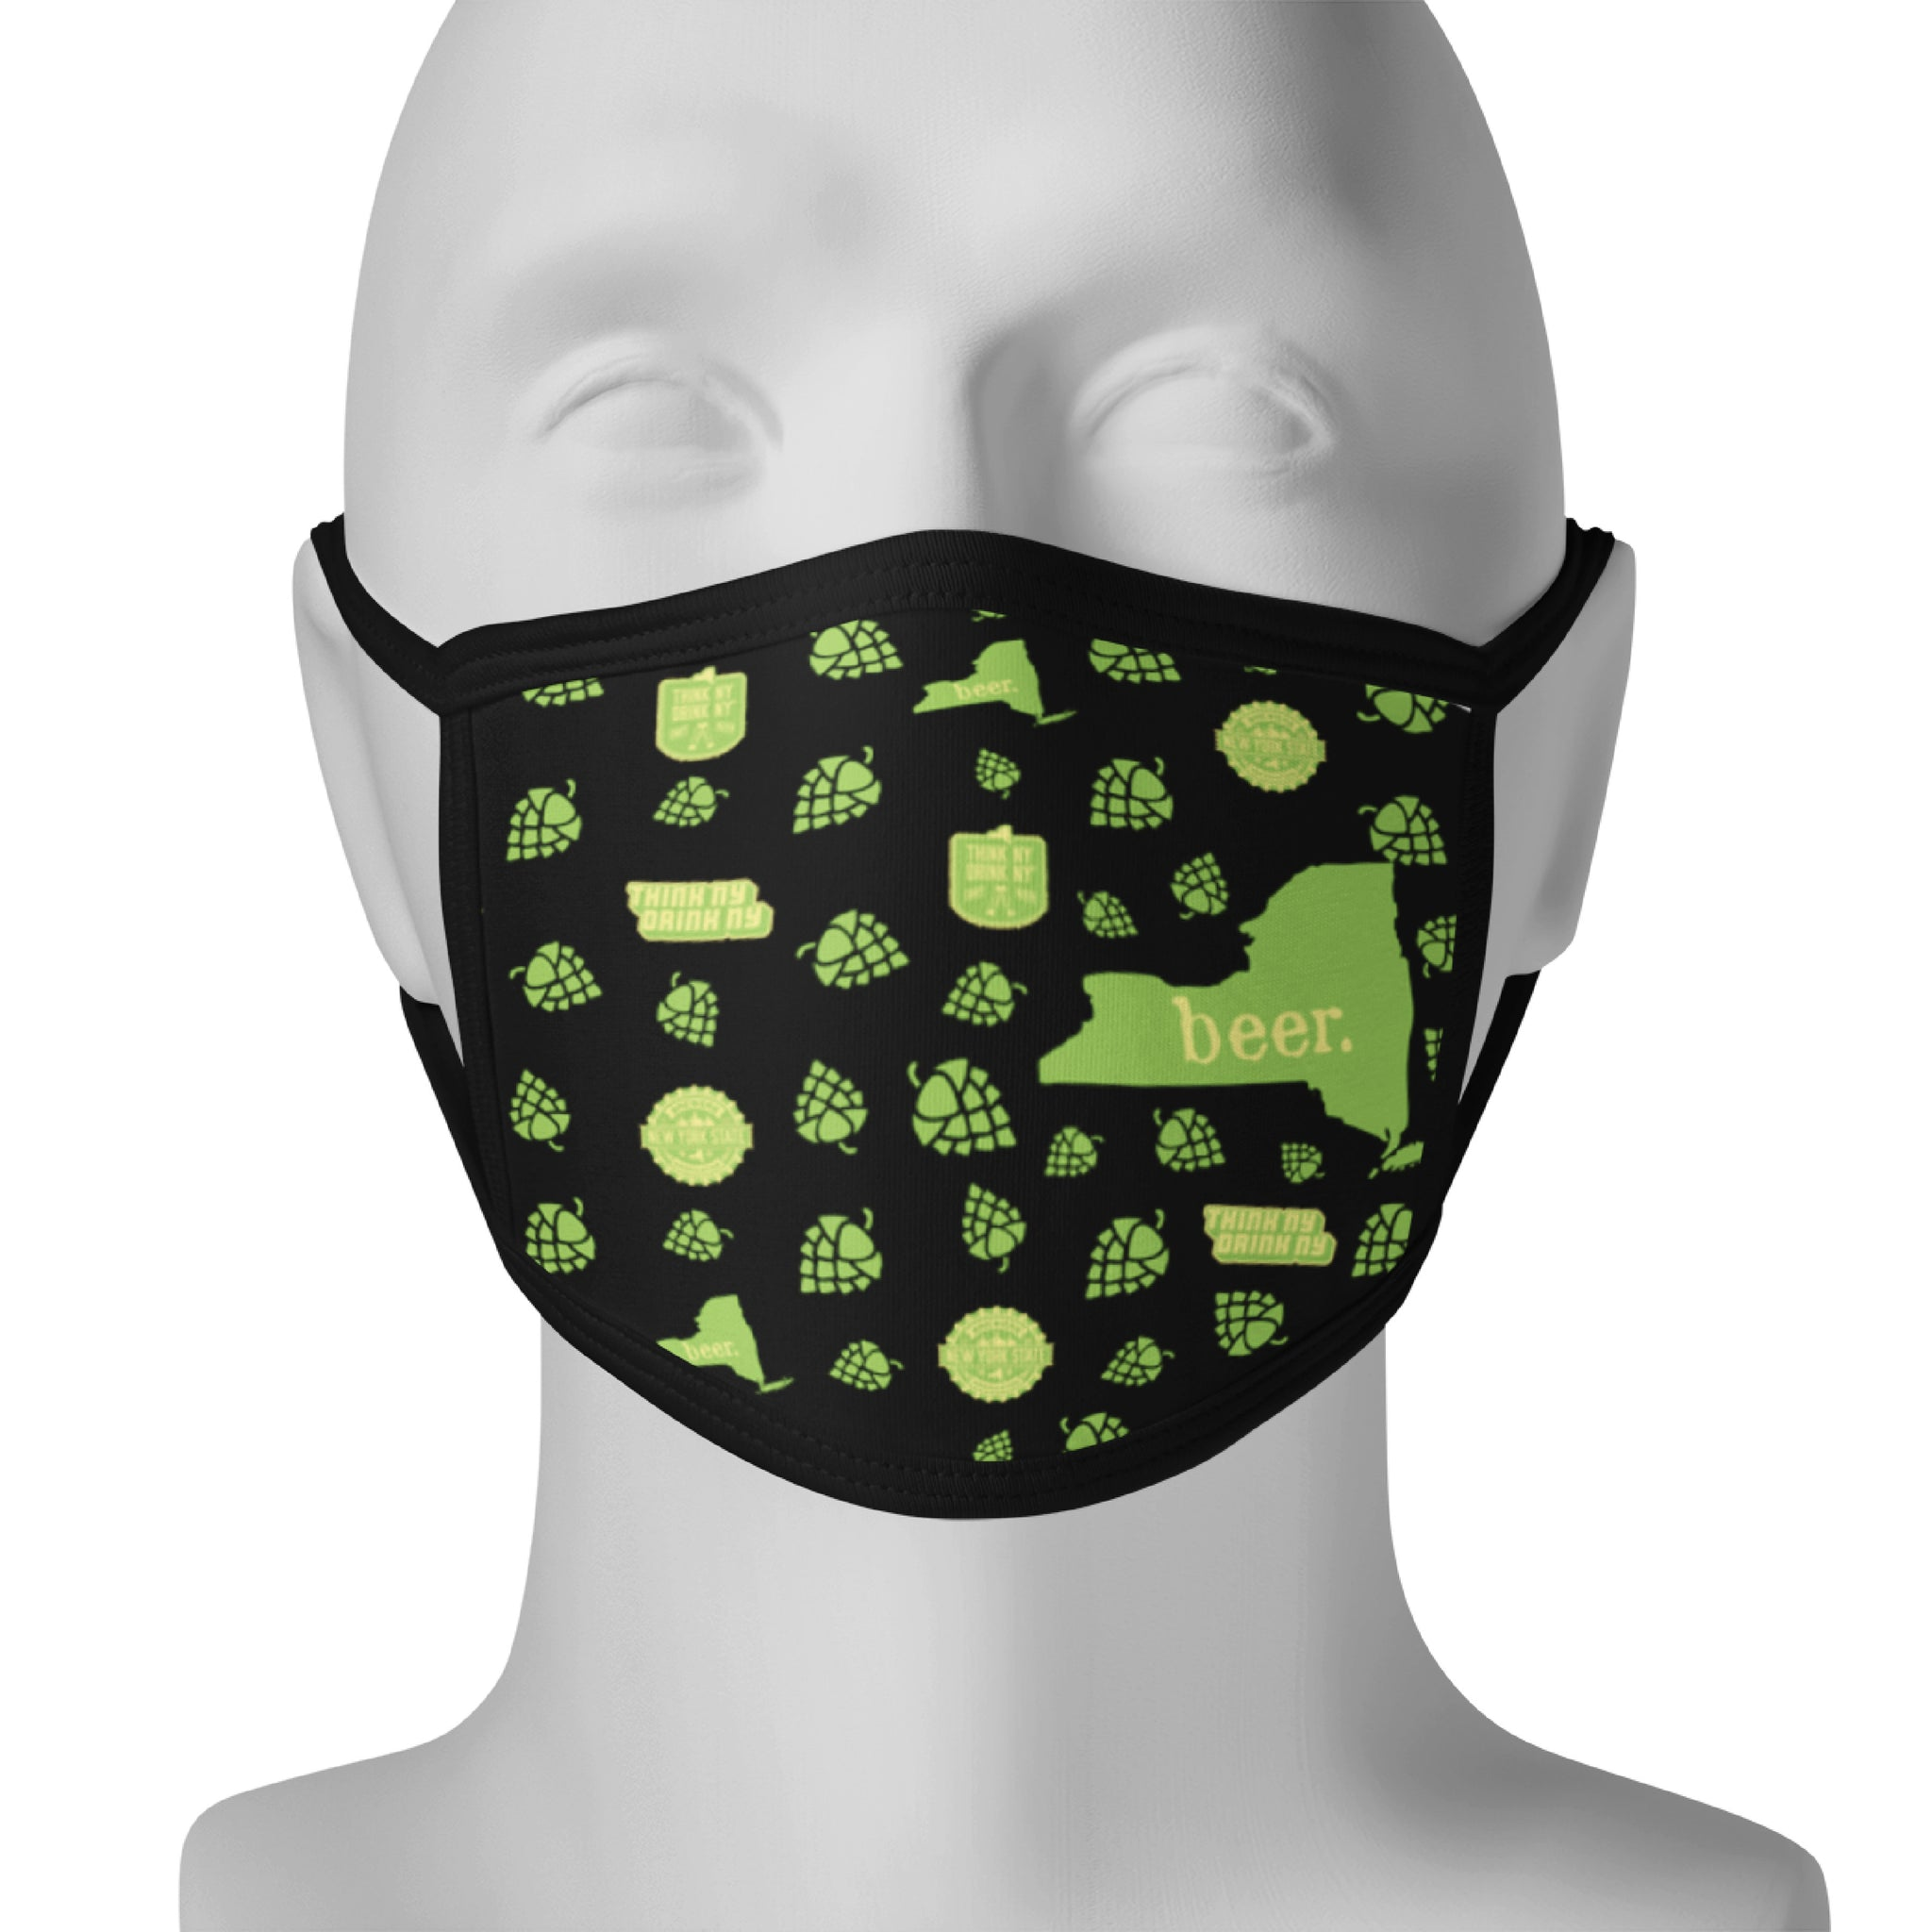 NYS Craft Beer | Facemask